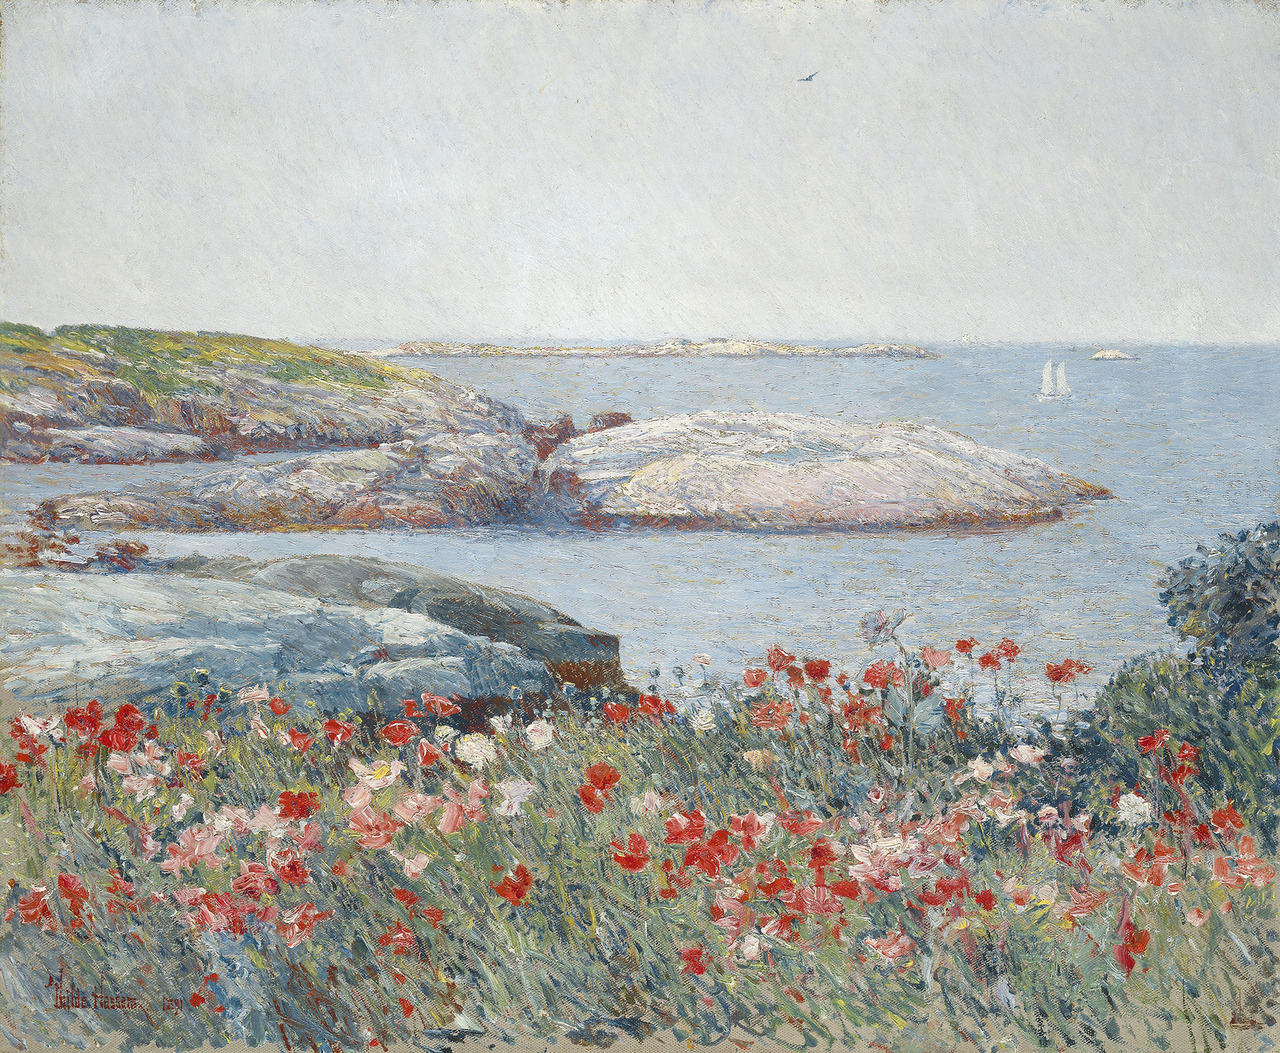 Childe Hassam - Poppies (Poppies, Isles of Shoals), 1891. Oil on canvas